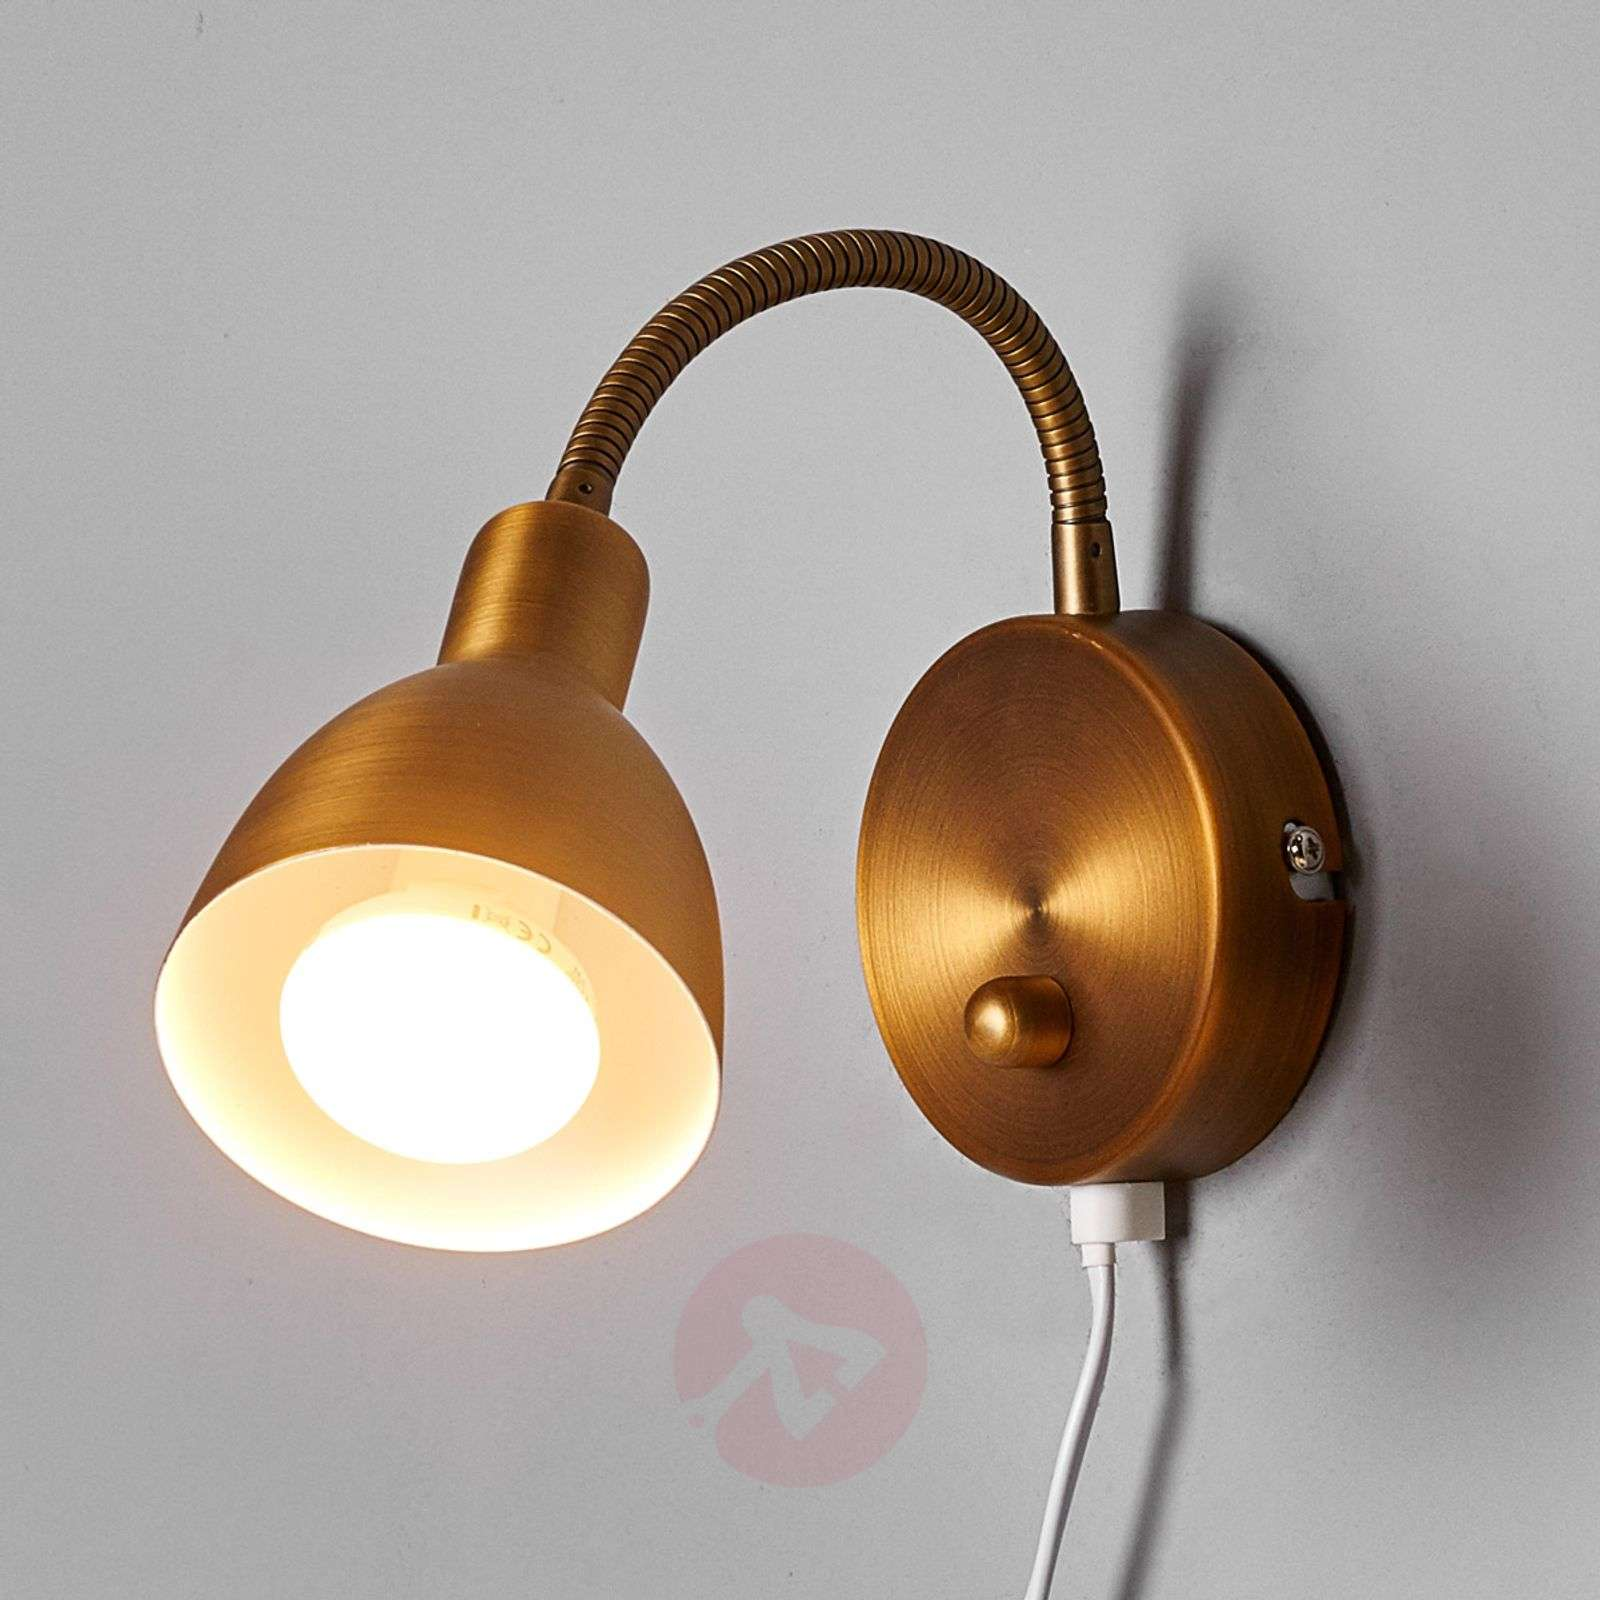 Amrei movable wall light in antique brass-9620260-01